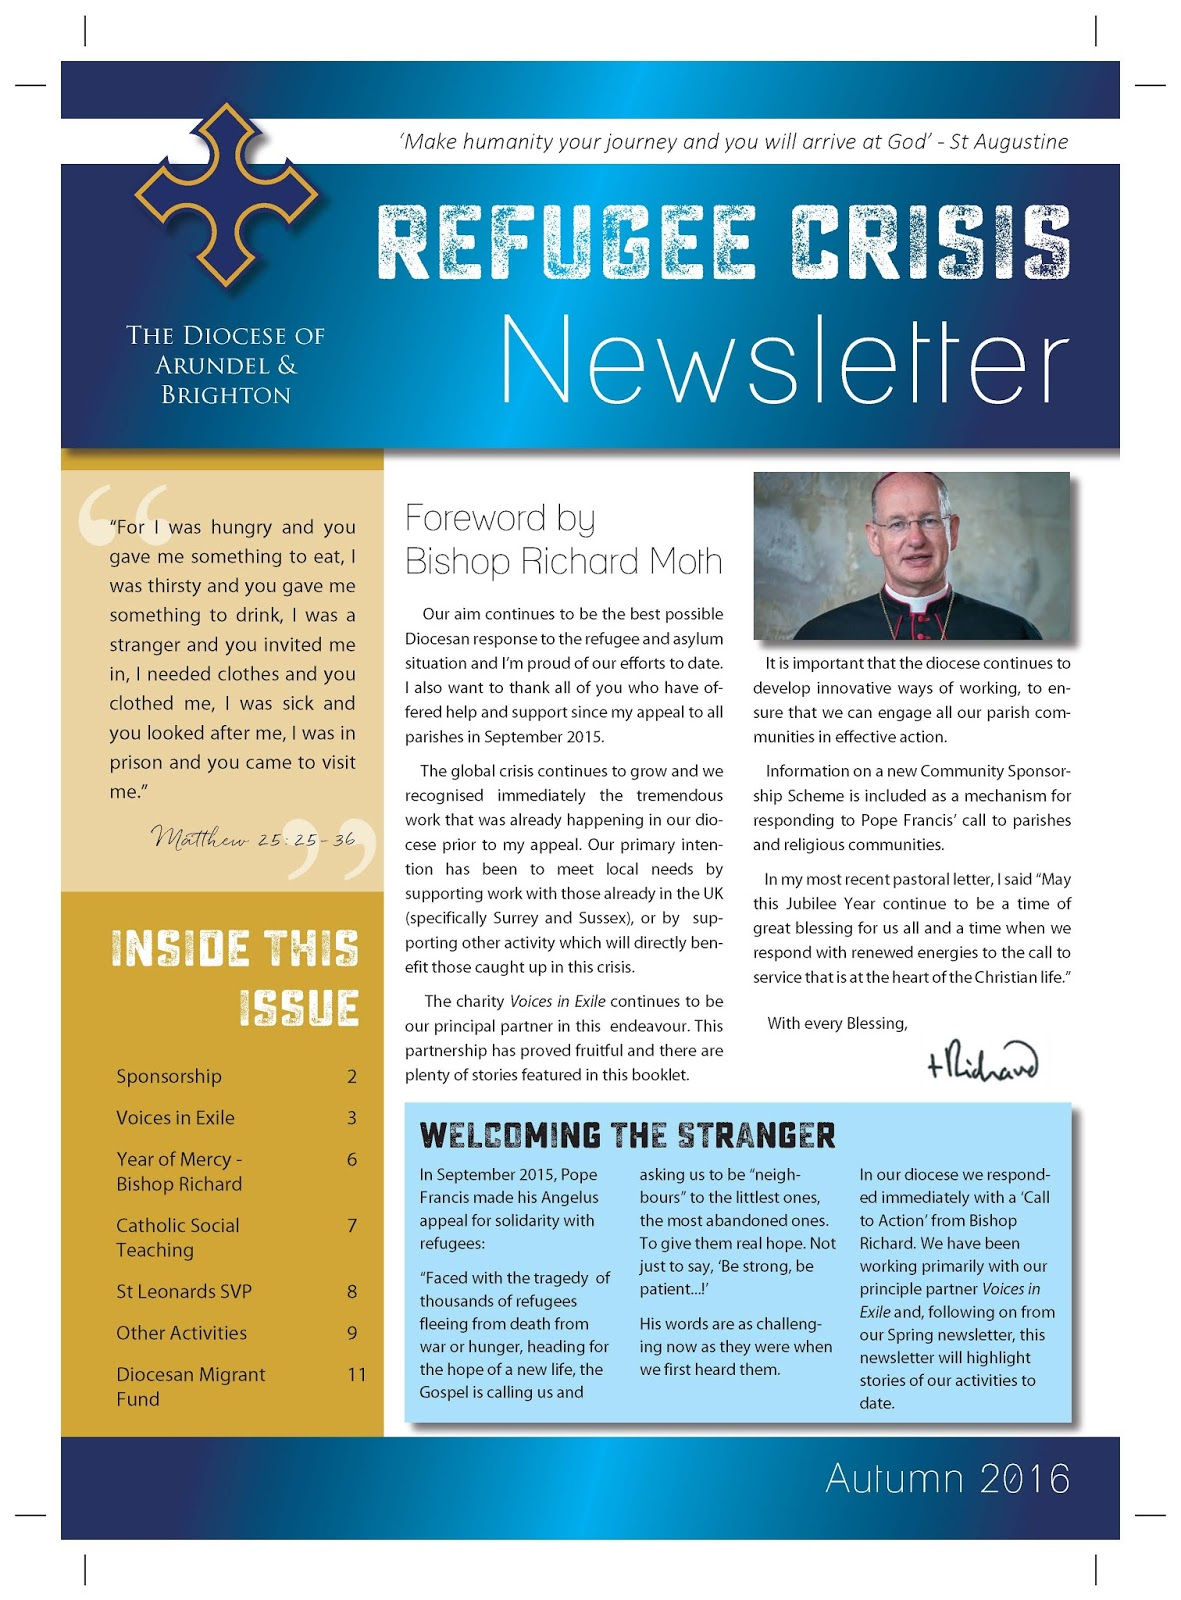 A&B News Blog: Refugee Crisis Newsletter